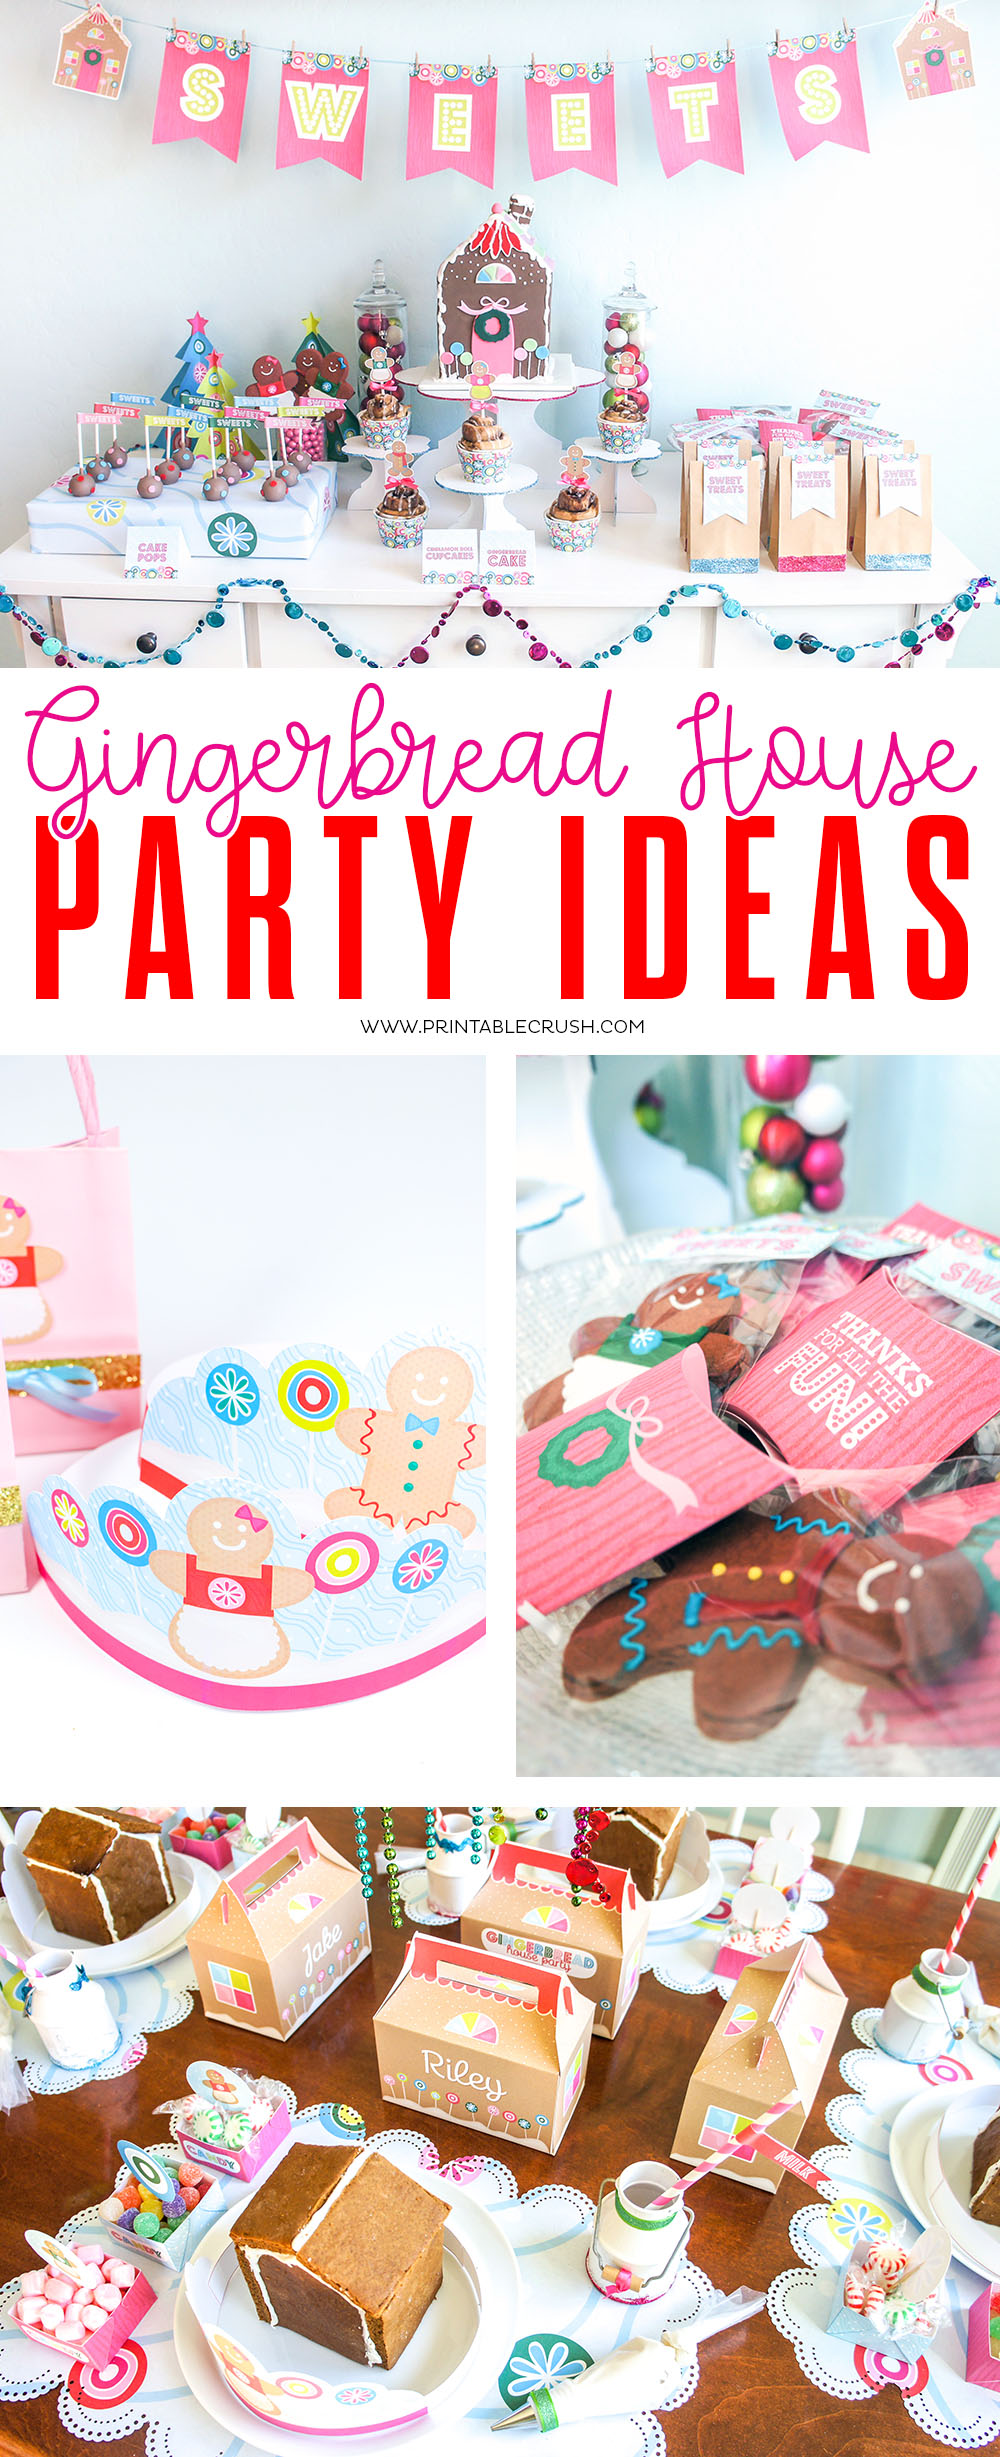 Gingerbread House Party Ideas Printable Crush